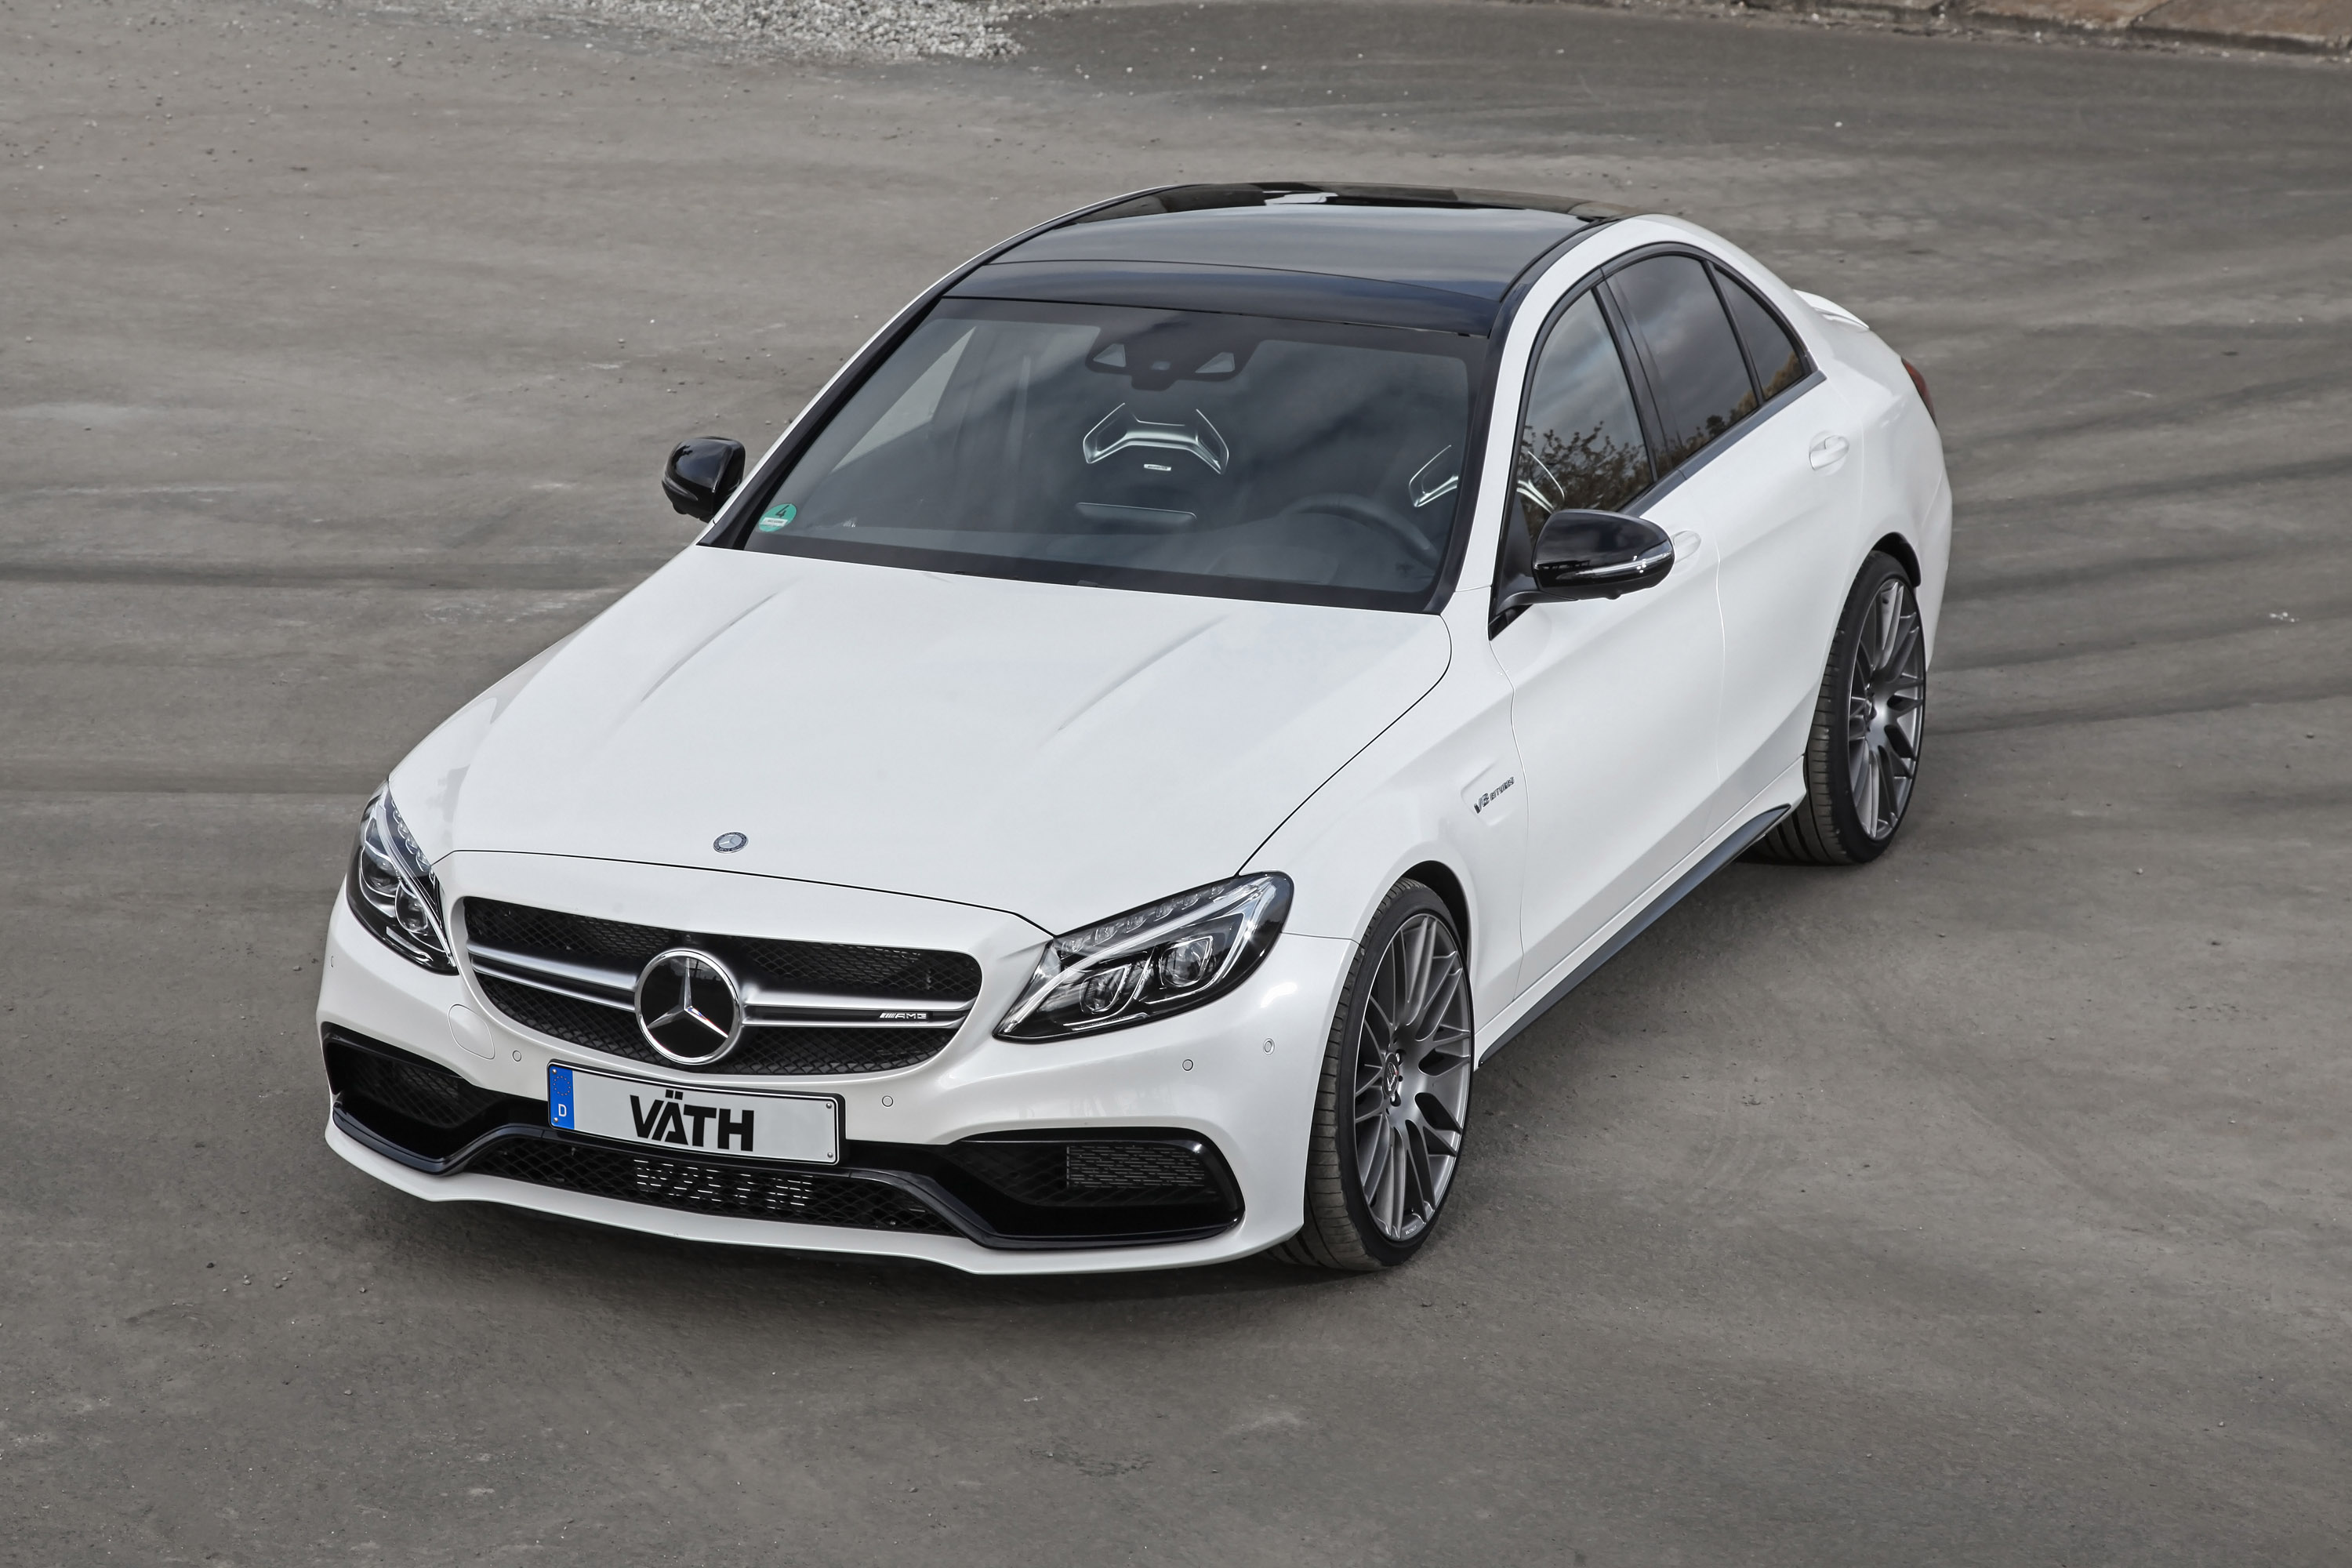 Vaeth mercedes benz c63 amg with up to 680 horsepower for C63 mercedes benz